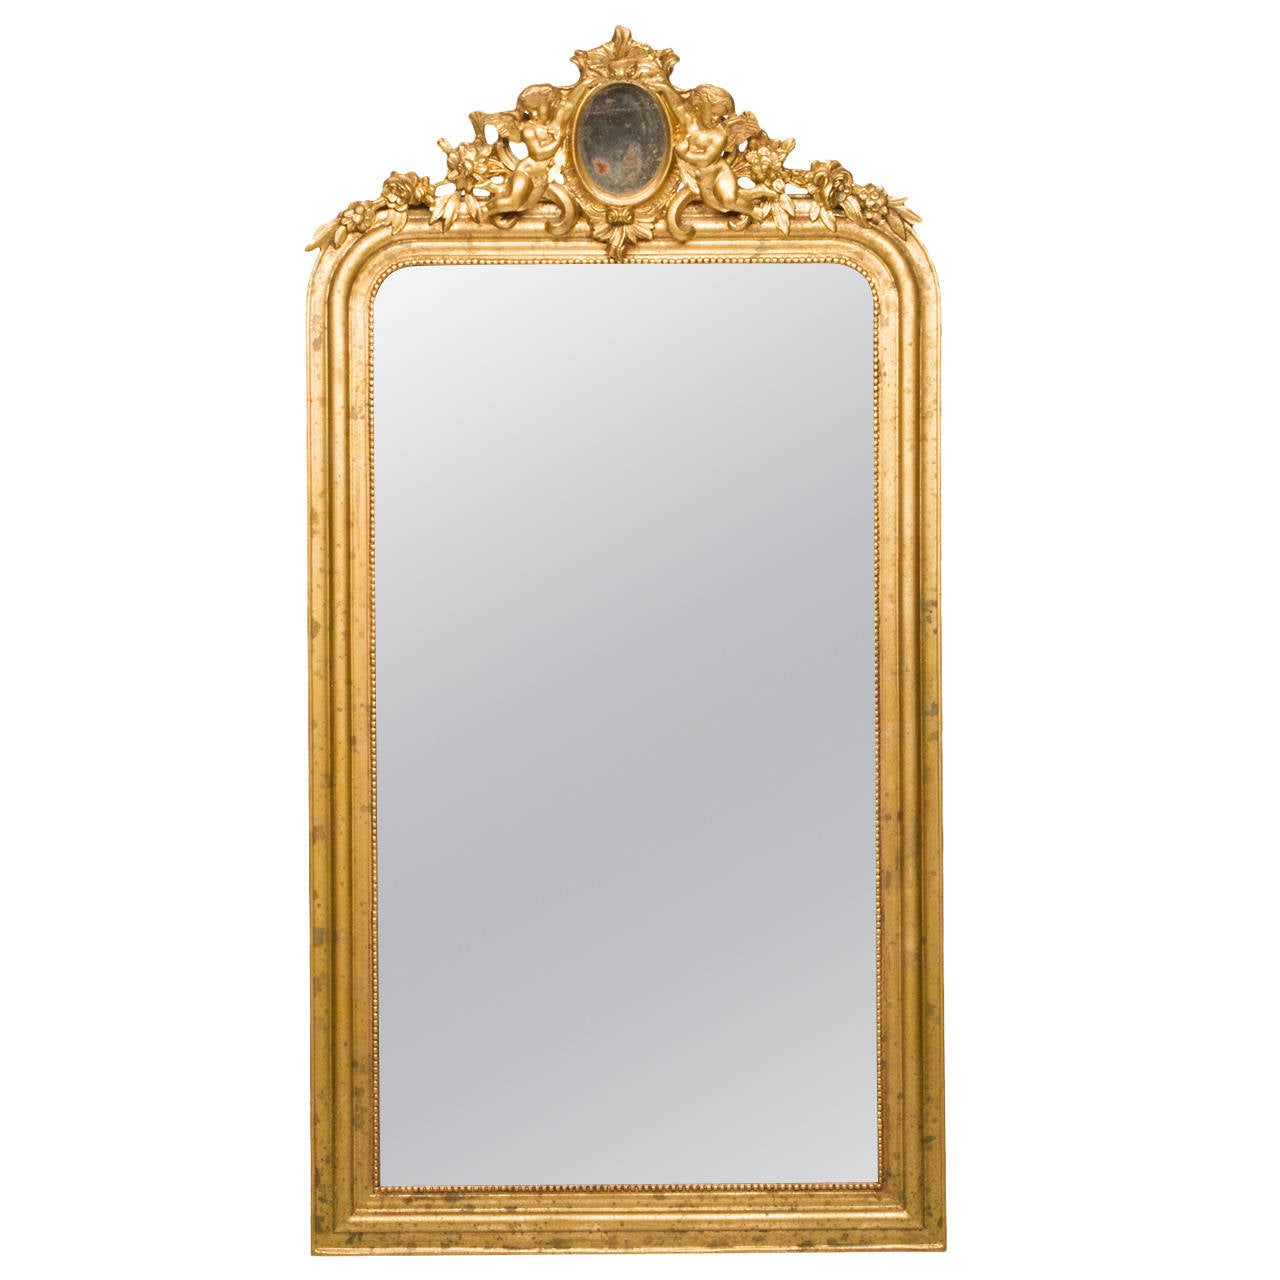 Louis philippe style antique mirror for sale at 1stdibs for Mirrors for sale